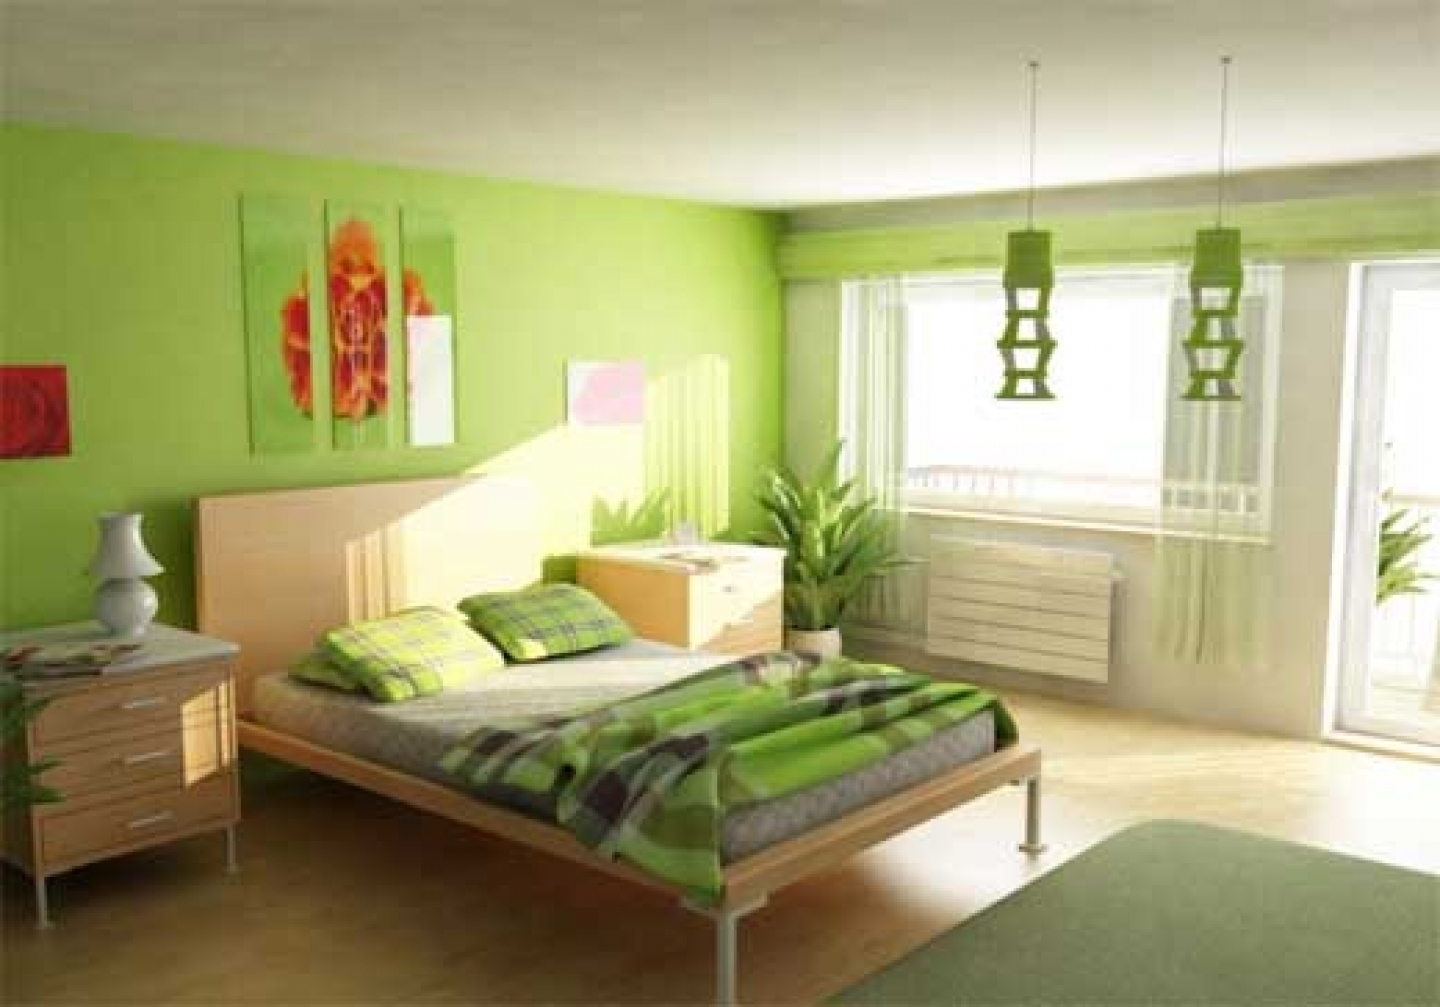 Interior Painting Bedroom Decorating (View 1 of 10)